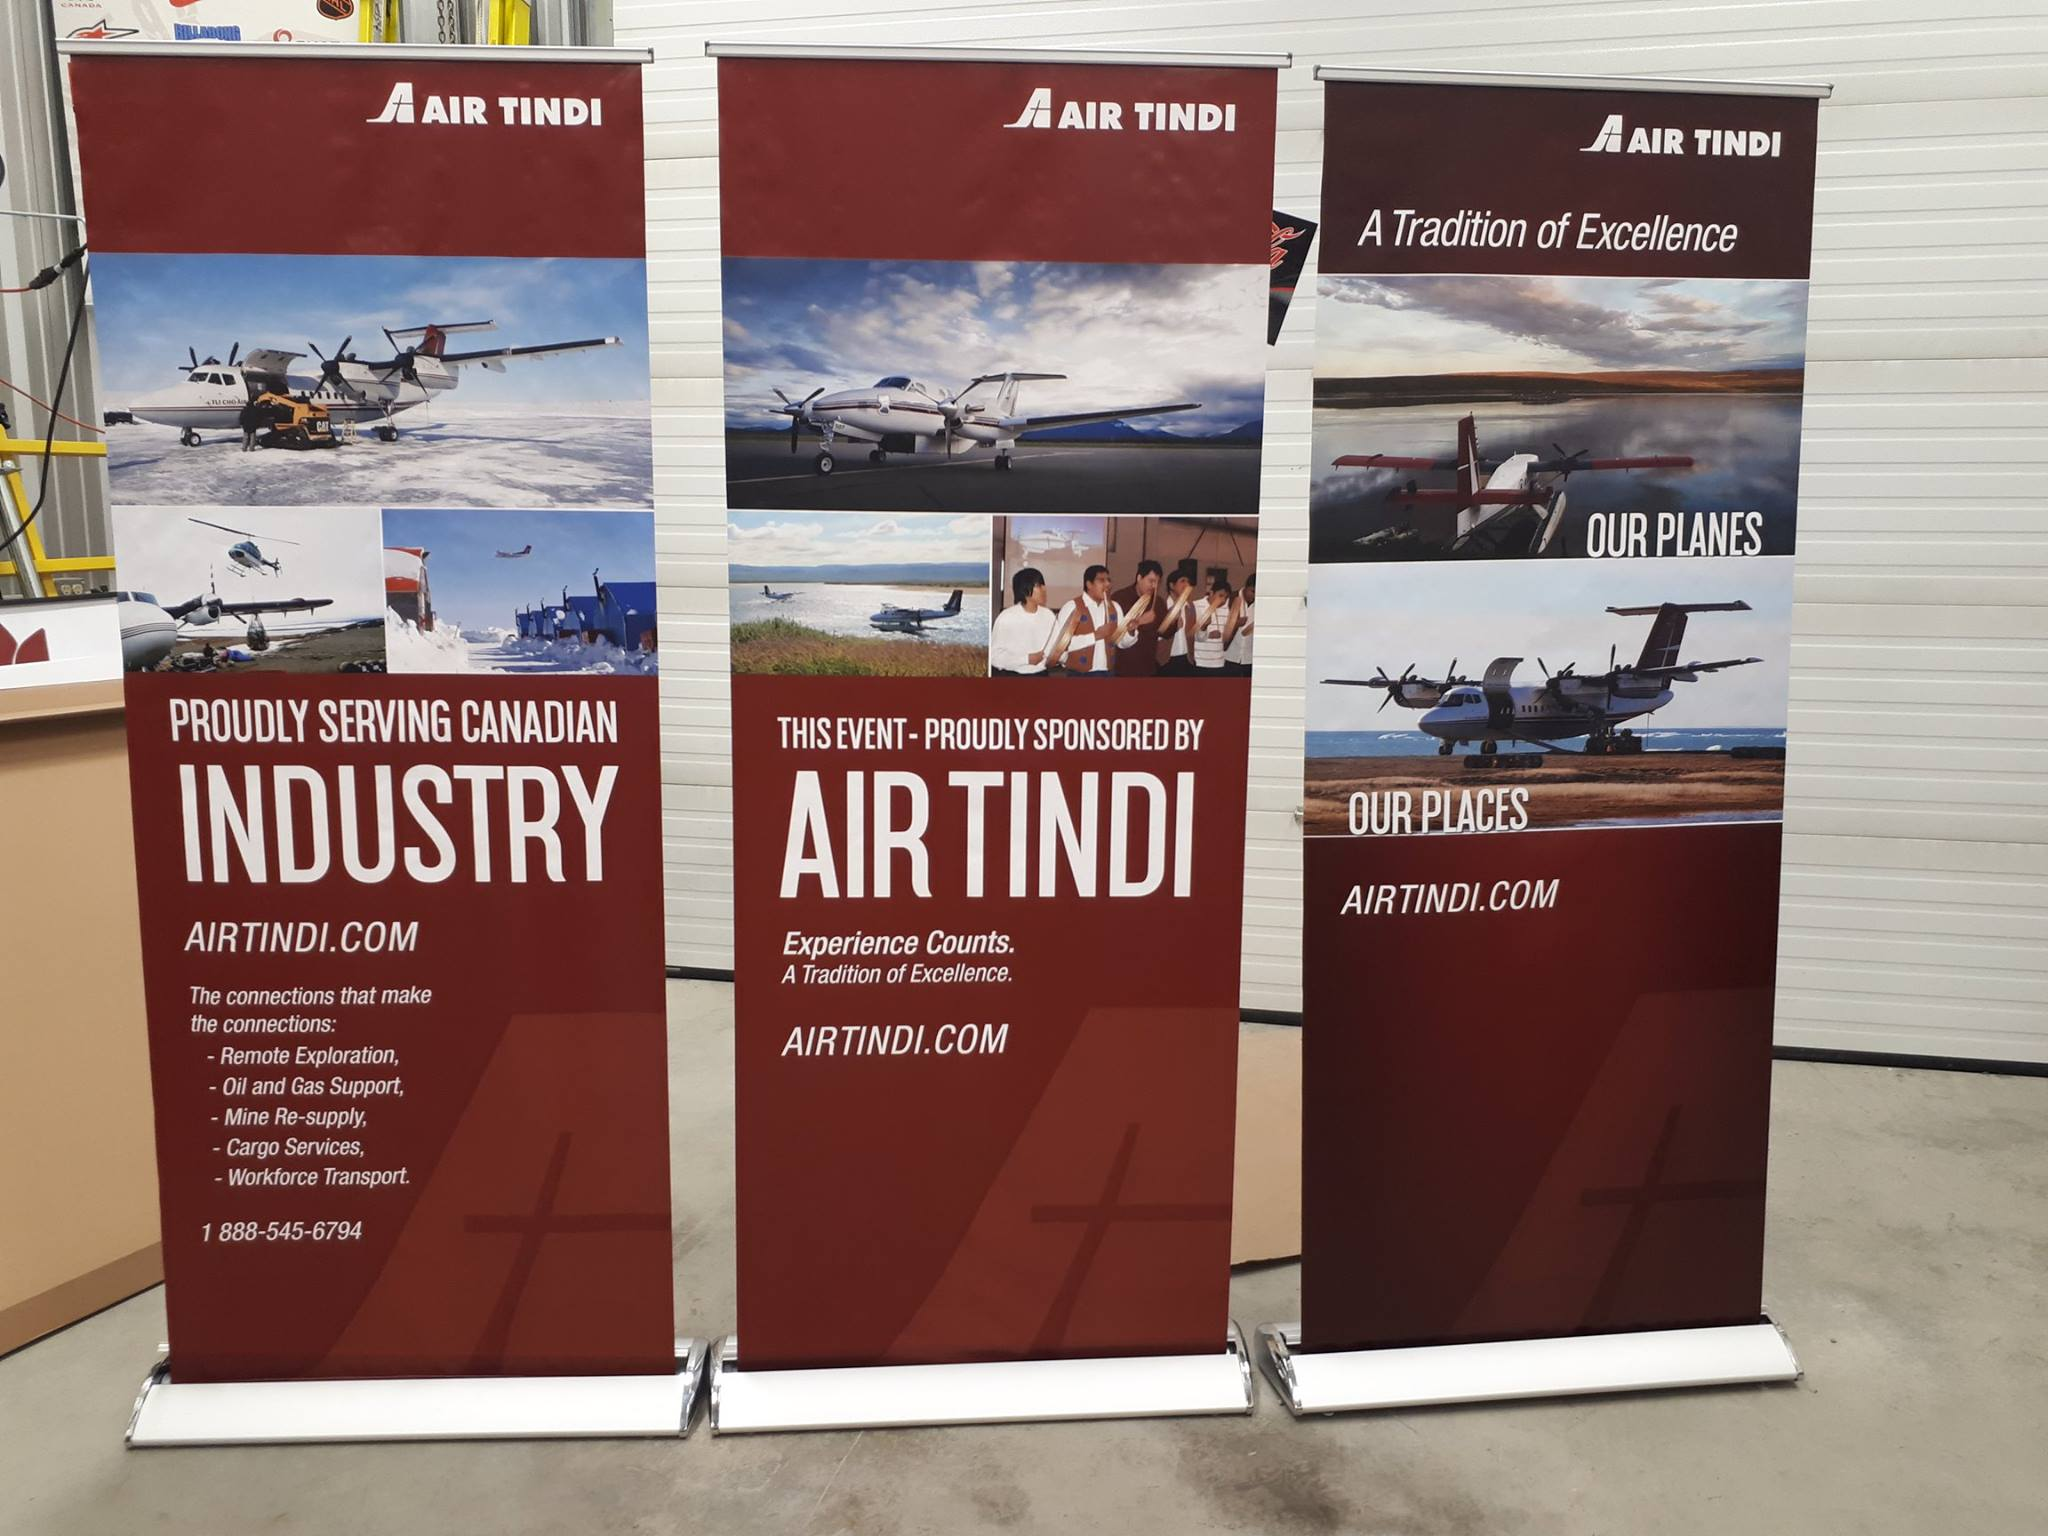 For corporate events or trade shows- we have various styles of banner stands shapes and sizes available to select from.